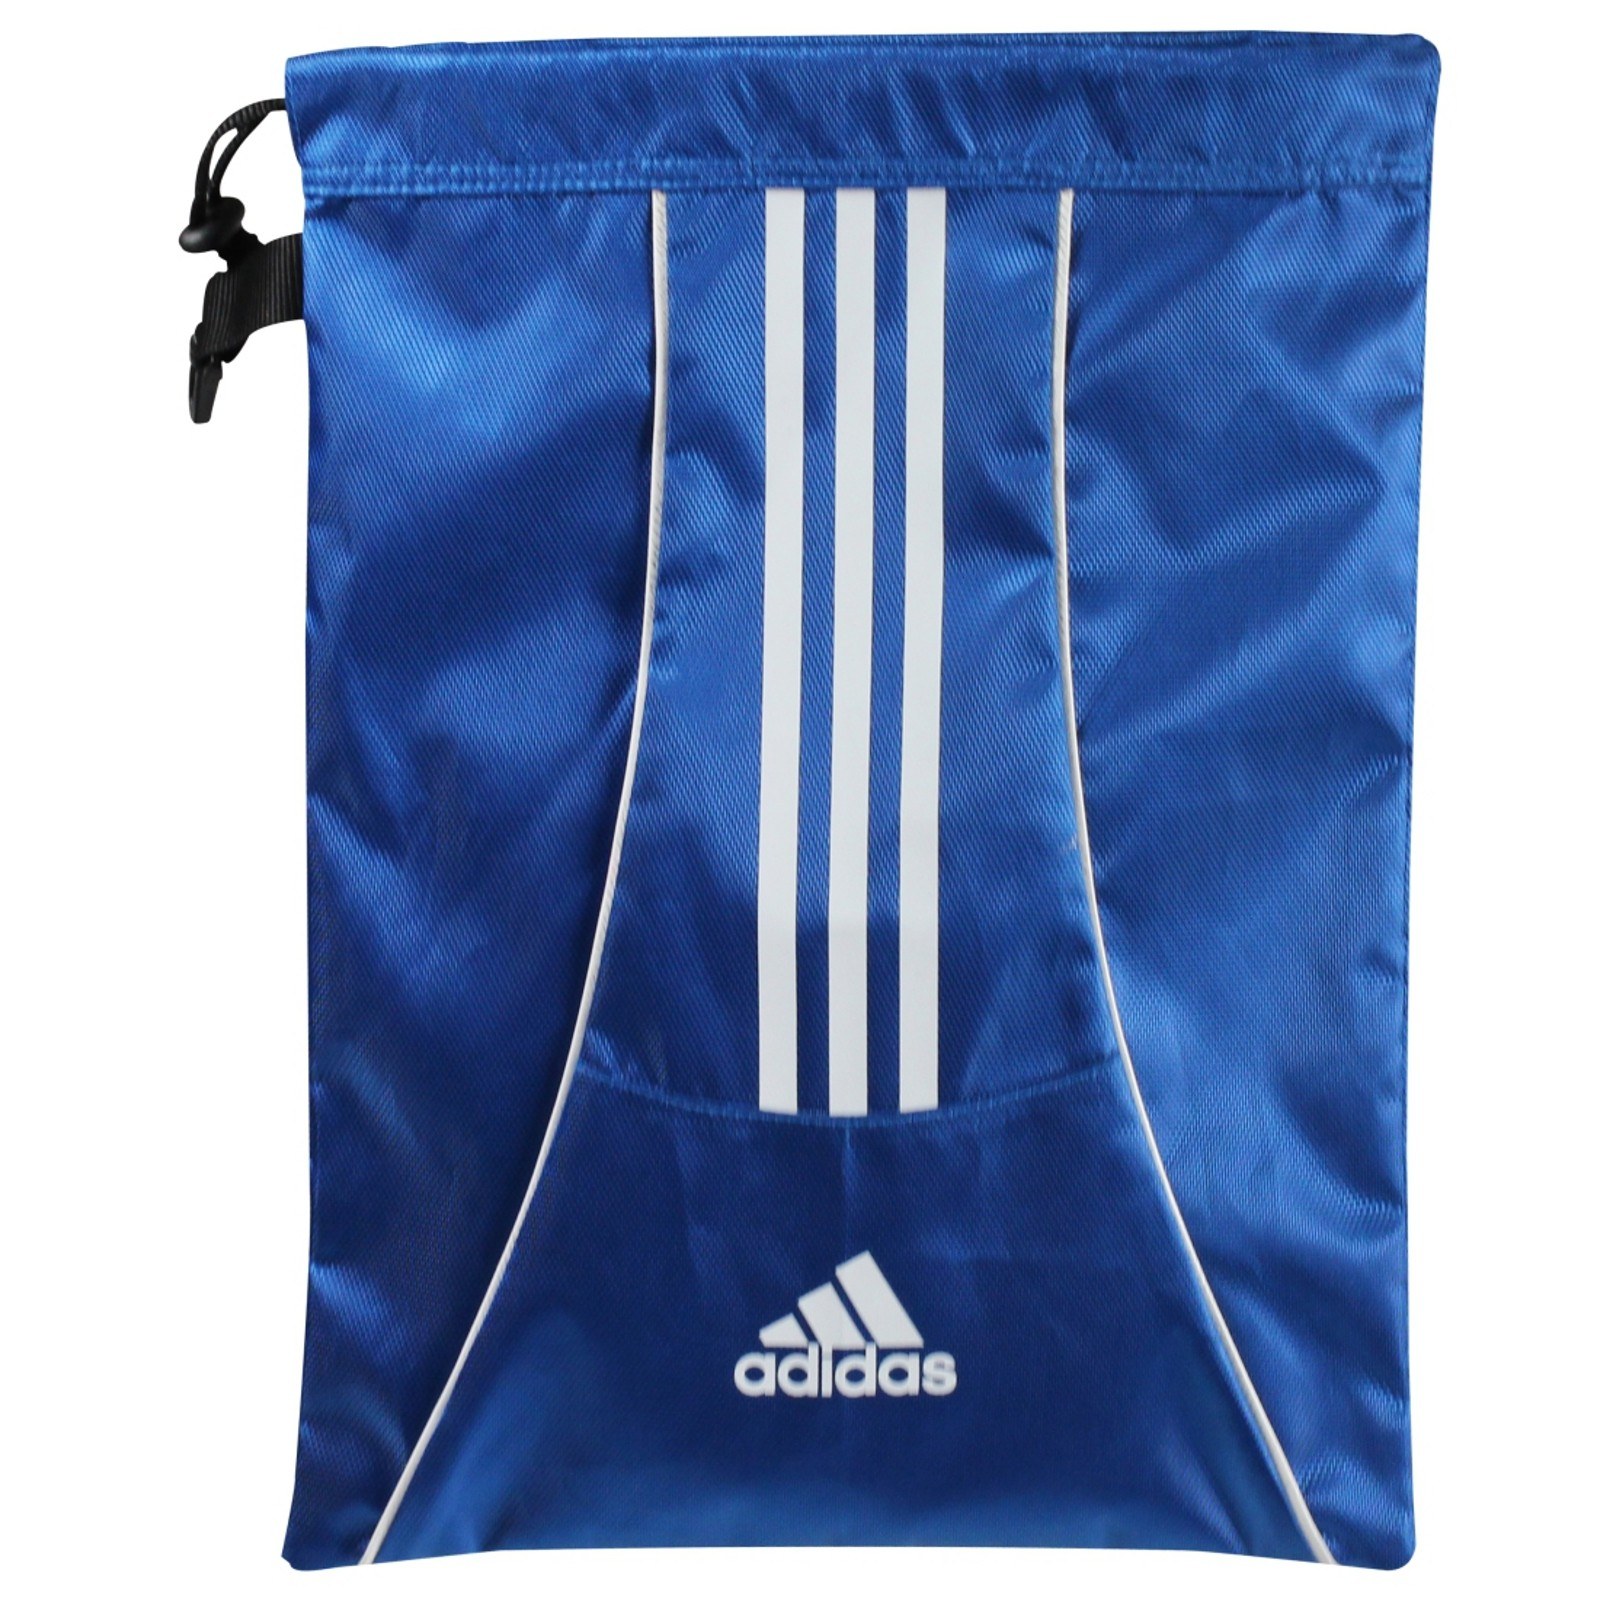 adidas shoe thermobag best buy at sport tiedje. Black Bedroom Furniture Sets. Home Design Ideas